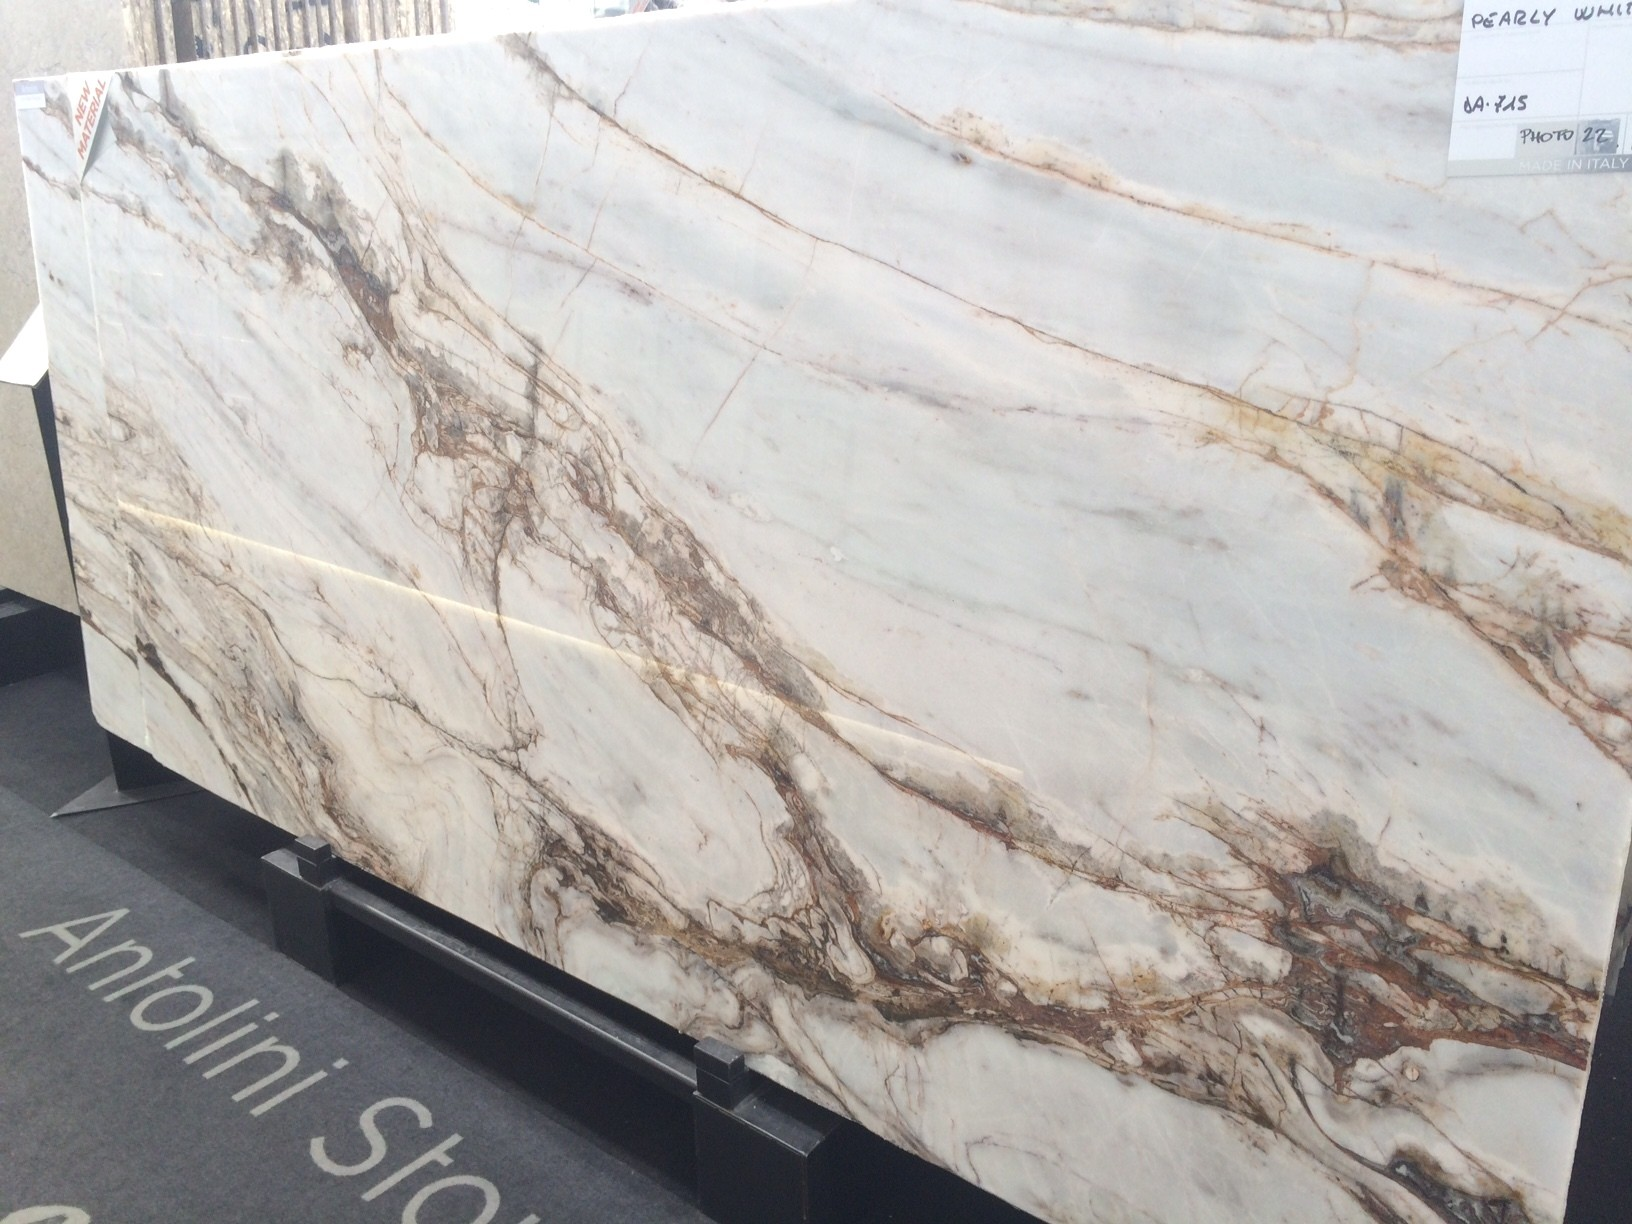 Pearly White marble